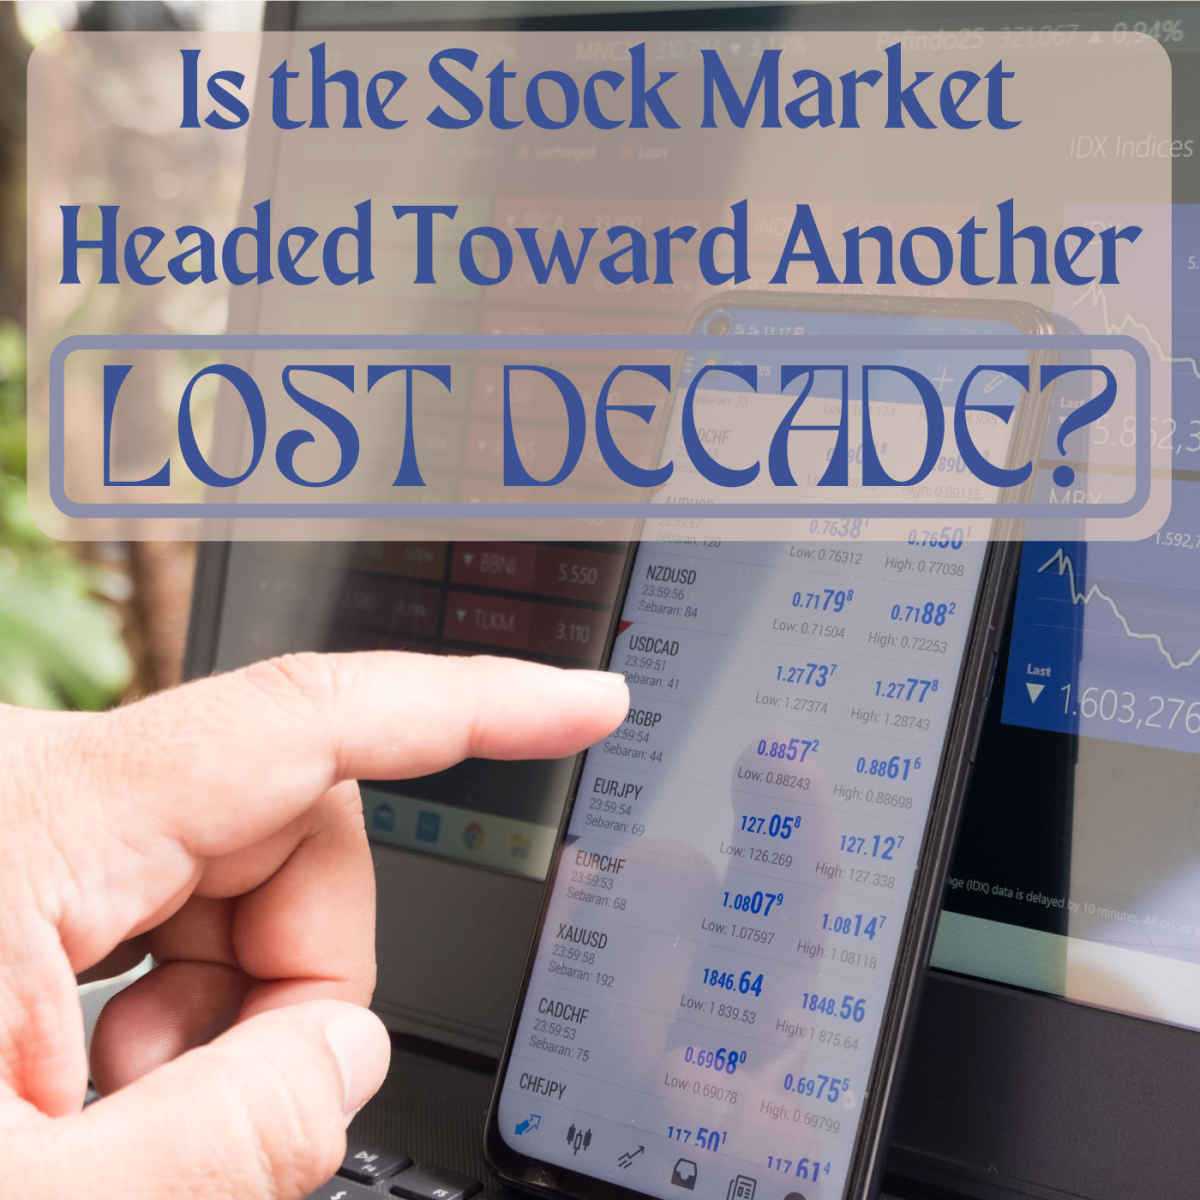 Even if the market as a whole becomes stagnant, there are still ways to make money from individual stocks.